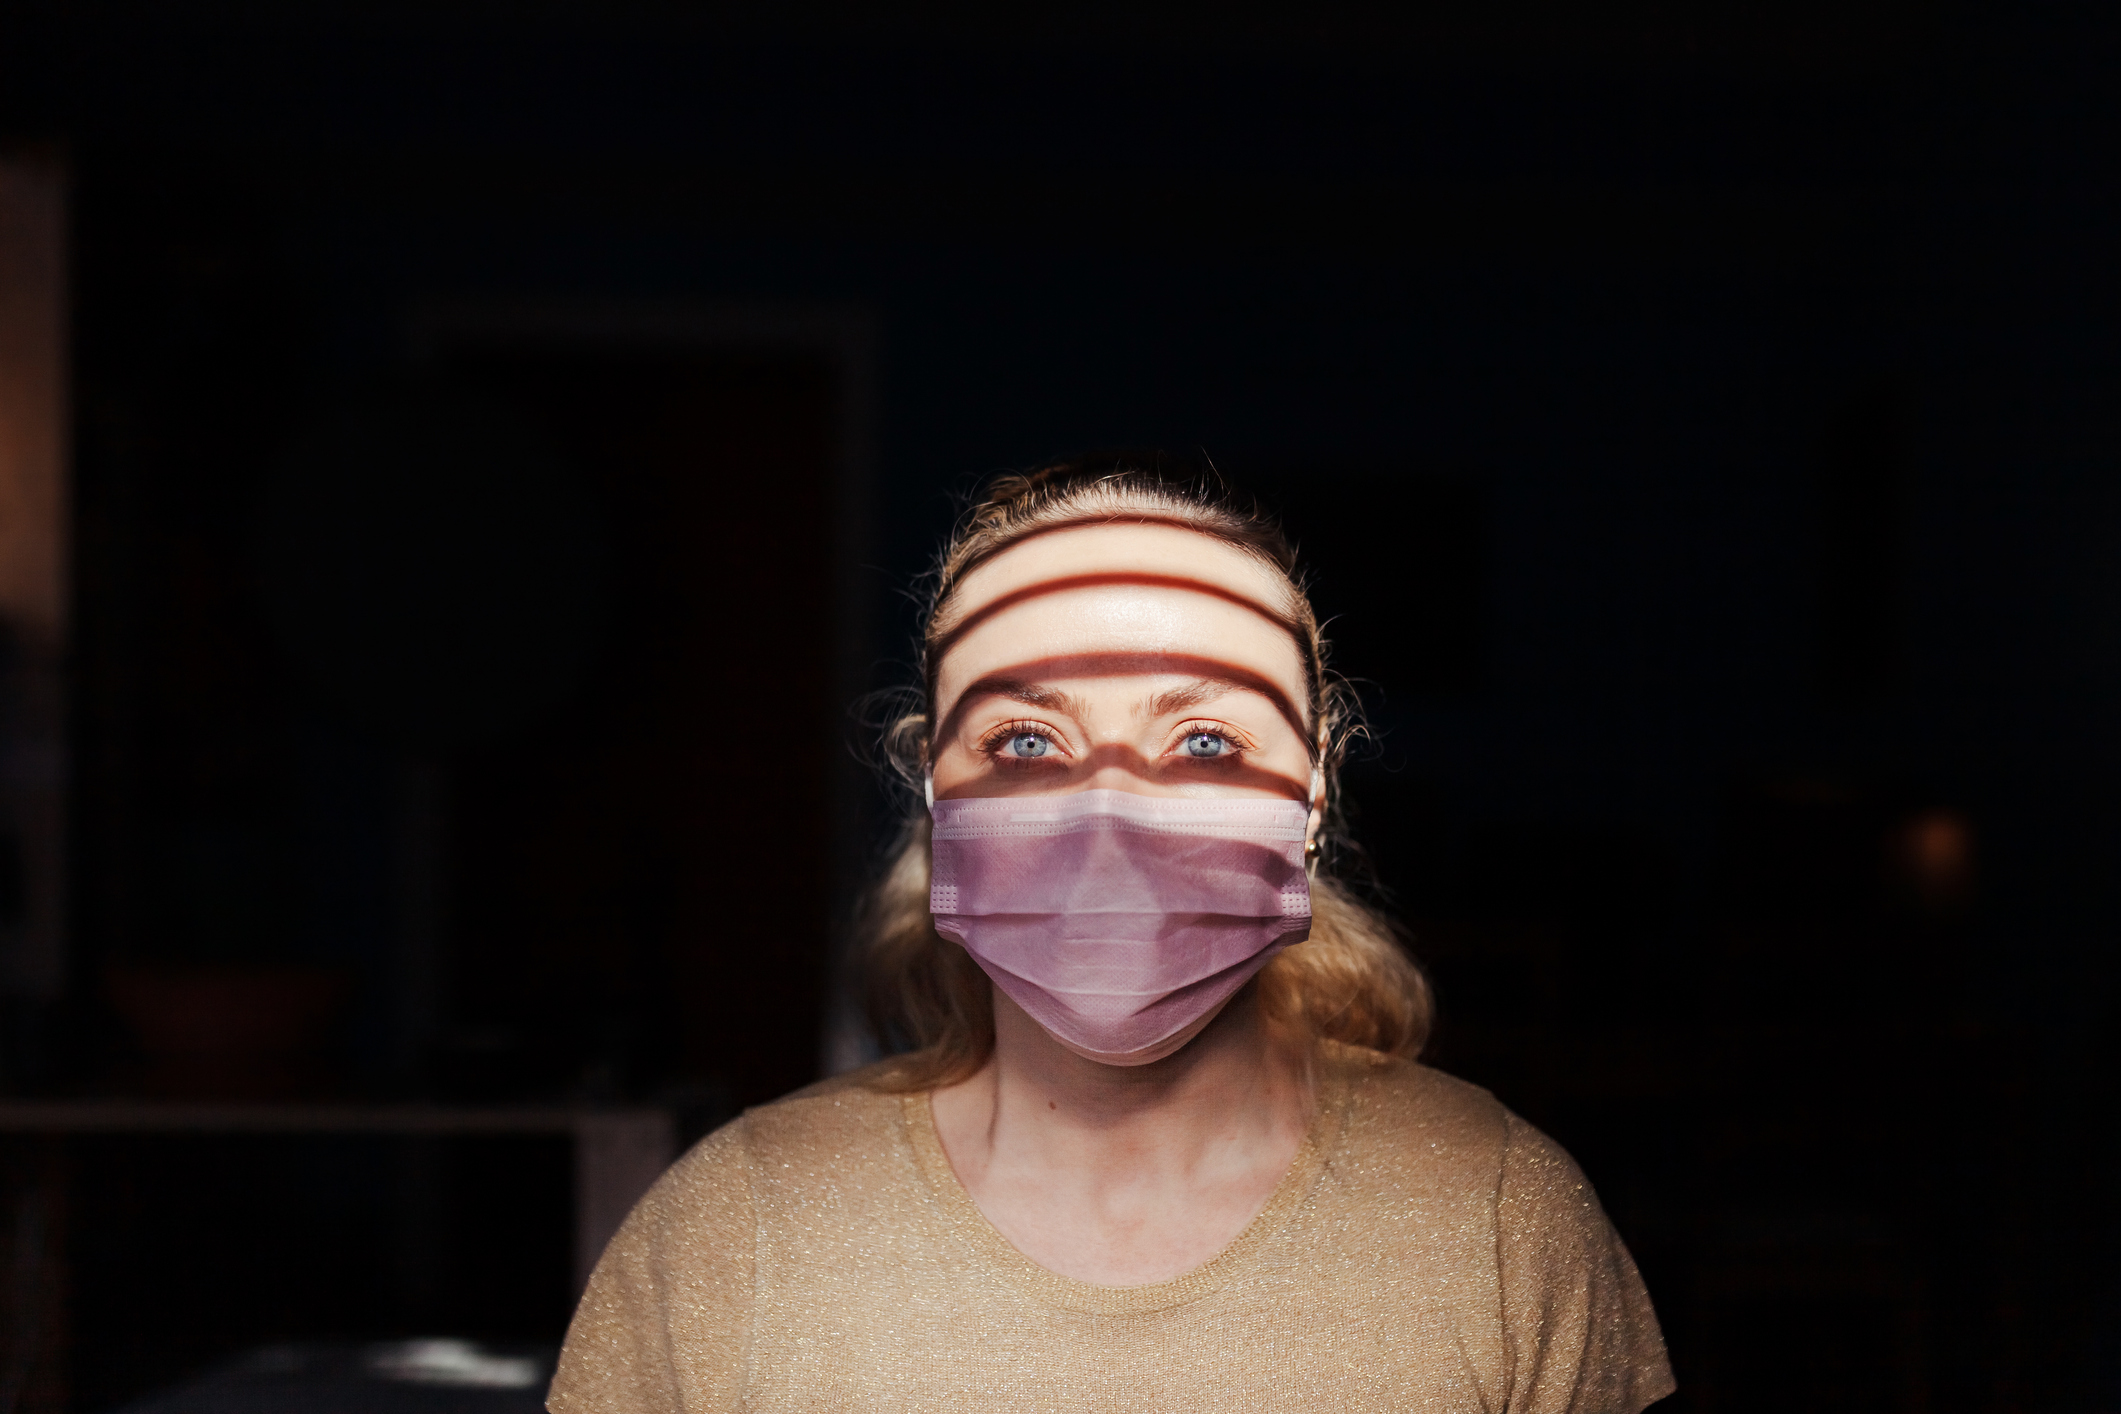 Woman wearing a surgical mask during quarantine in her house. Image credit: Manu Reyes, iStock